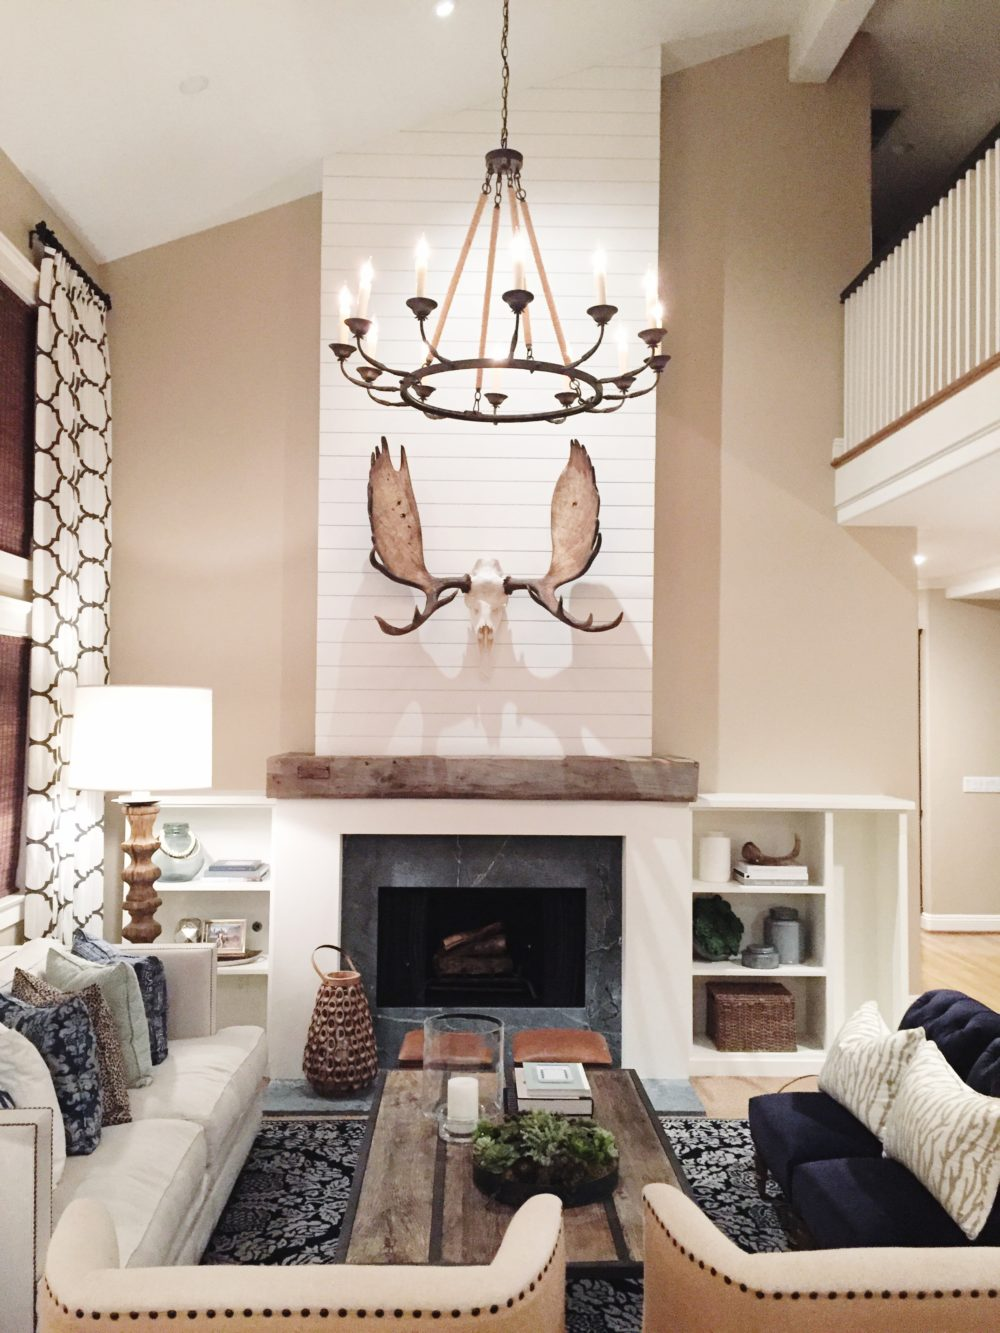 Project Reveal: #projectmanhattanbeach || Town Lifestyle + Design || Fireplace Remodel